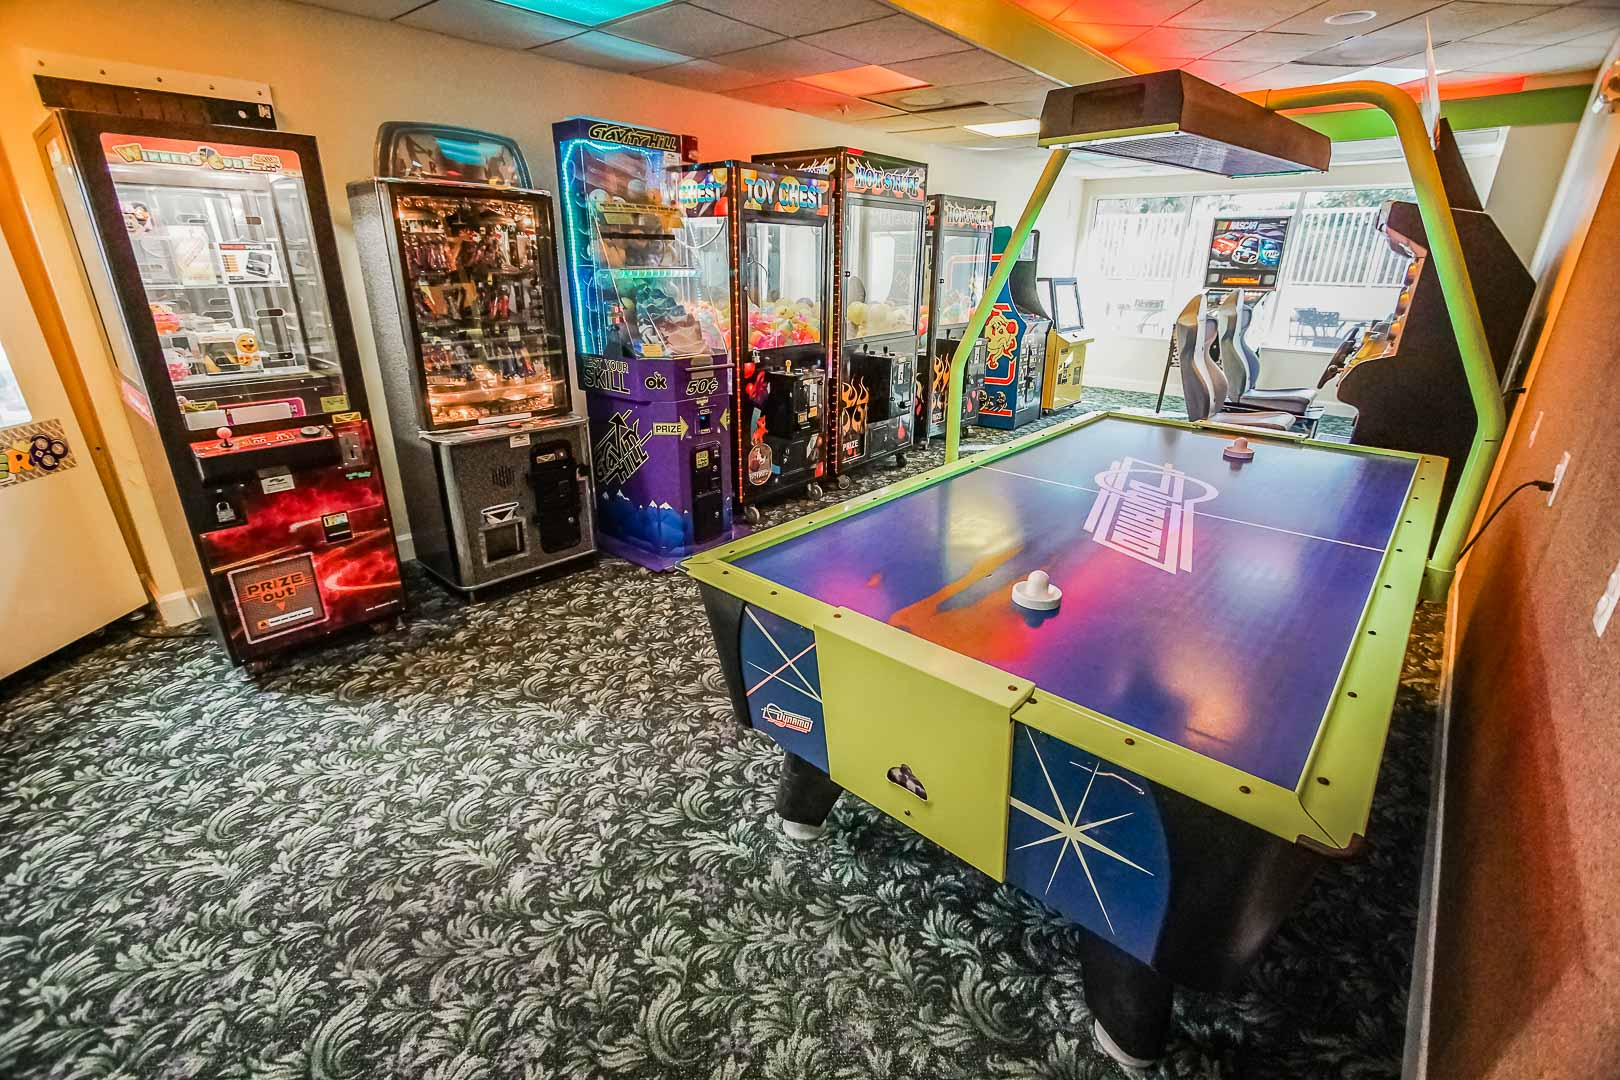 A colorful game room at VRI's The Resort on Cocoa Beach in Florida.